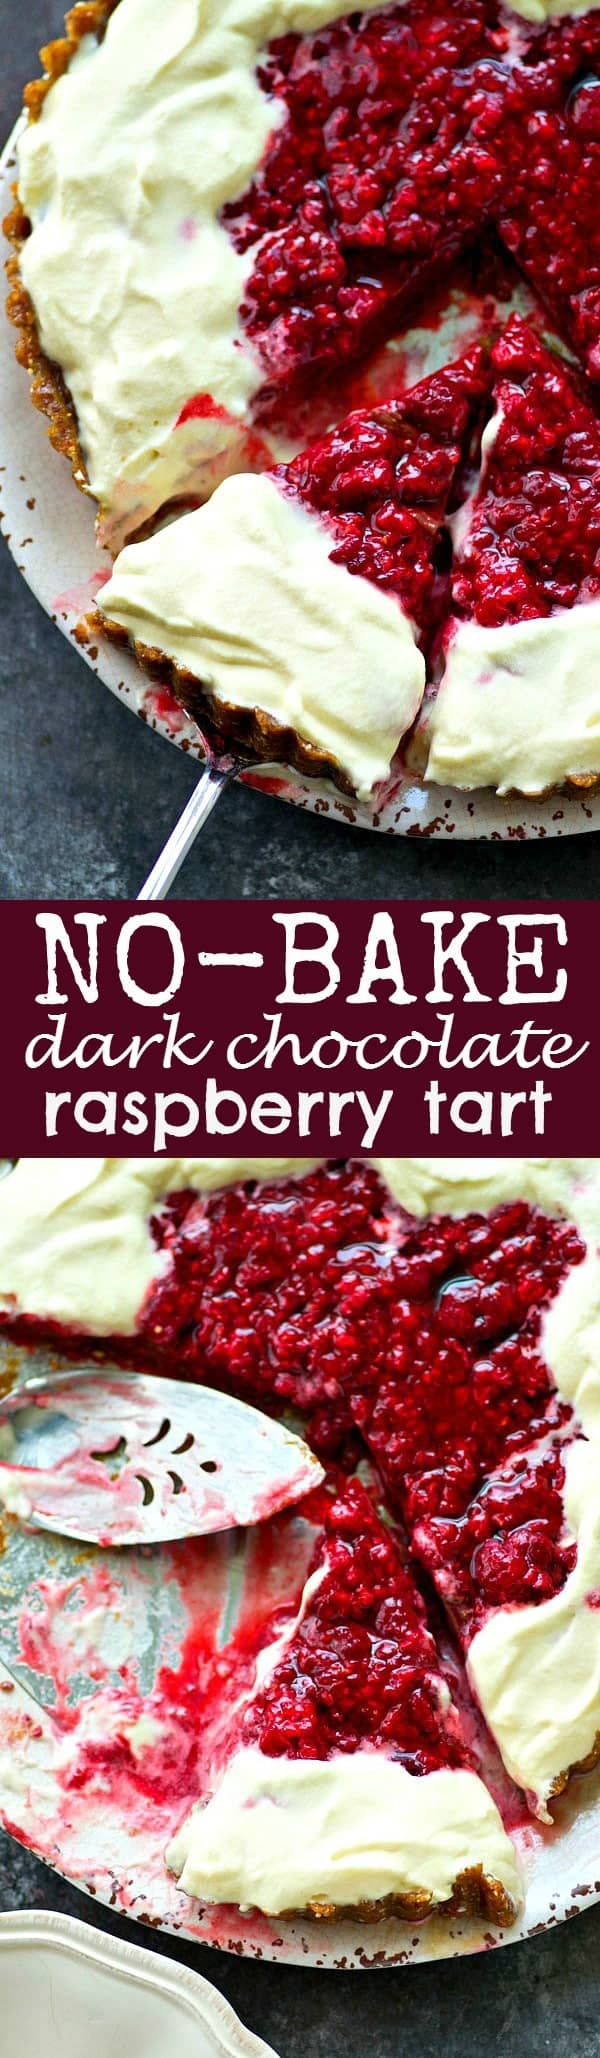 This easy no-bake dark chocolate raspberry tart is layered with a fudgy dark chocolate filling, tangy raspberry compote, and tons of whipped cream for one stunning summertime dessert!